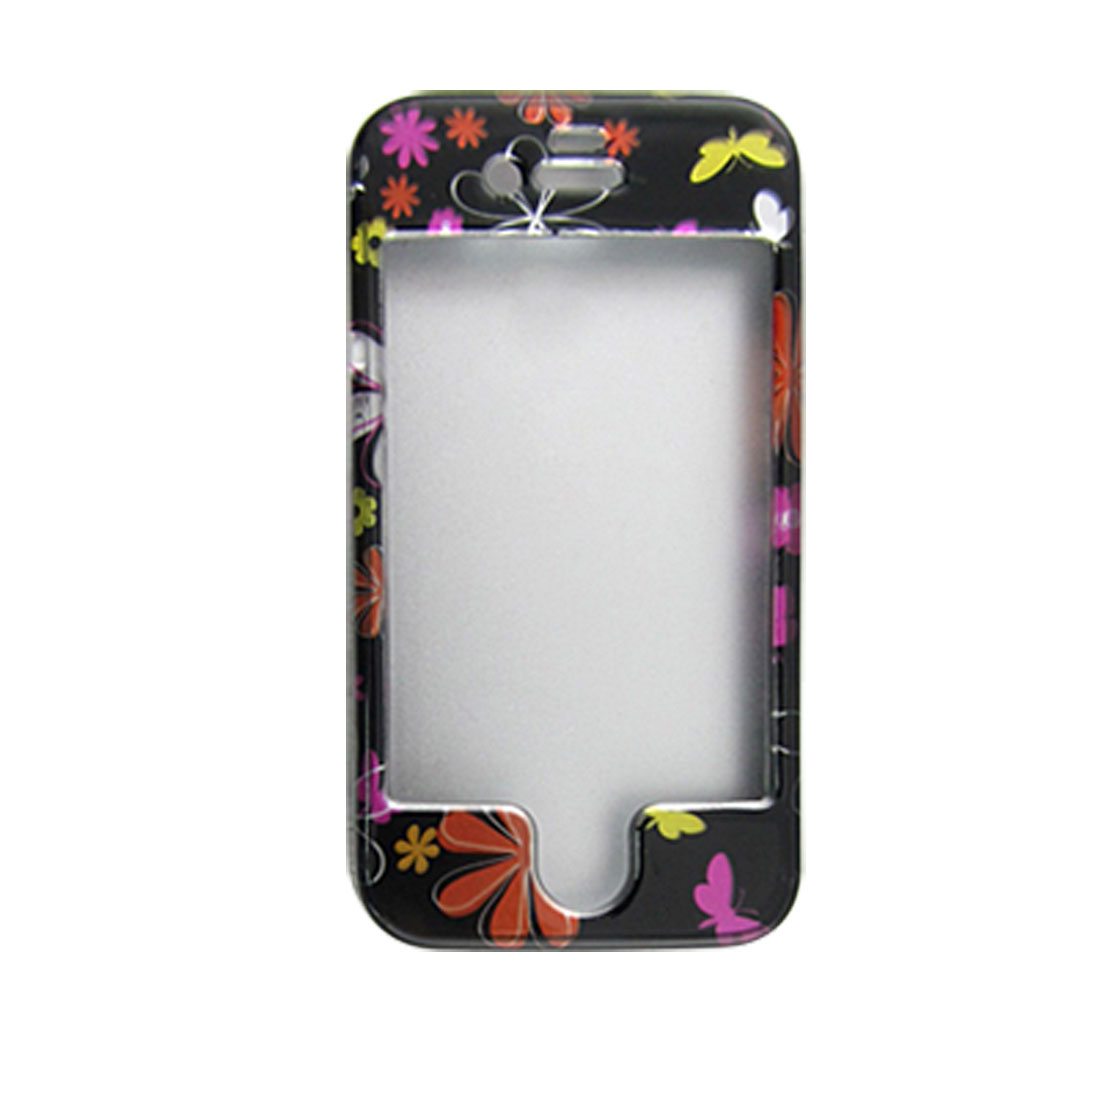 Butterfly Floral Printed Hard Plastic Cover for iPhone 4 4G